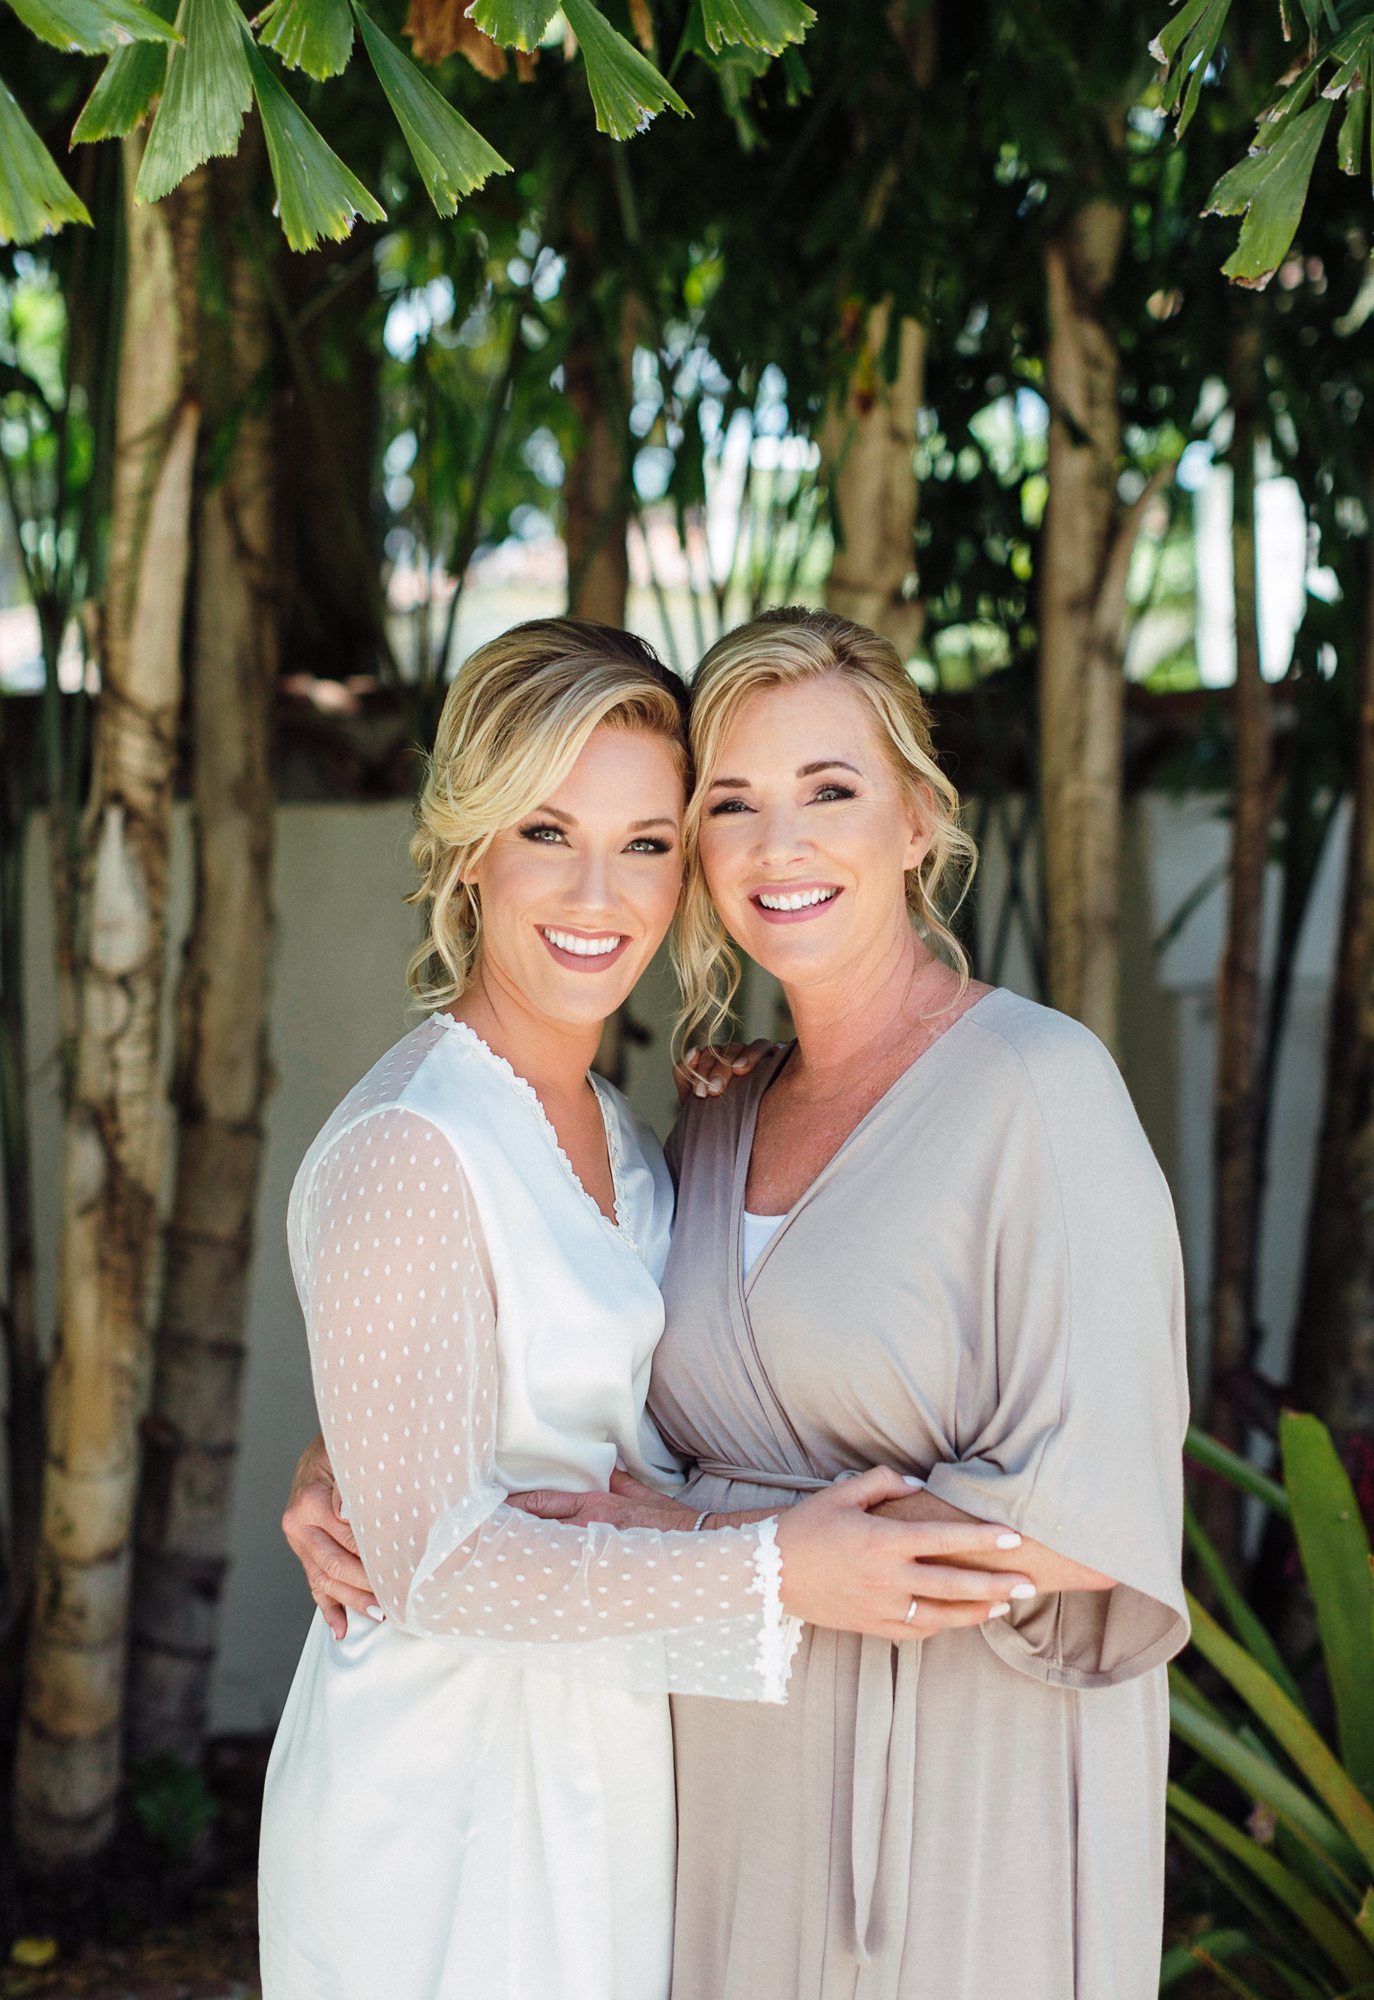 Bride and mother of the bride embrace each other outside in their getting ready robes.